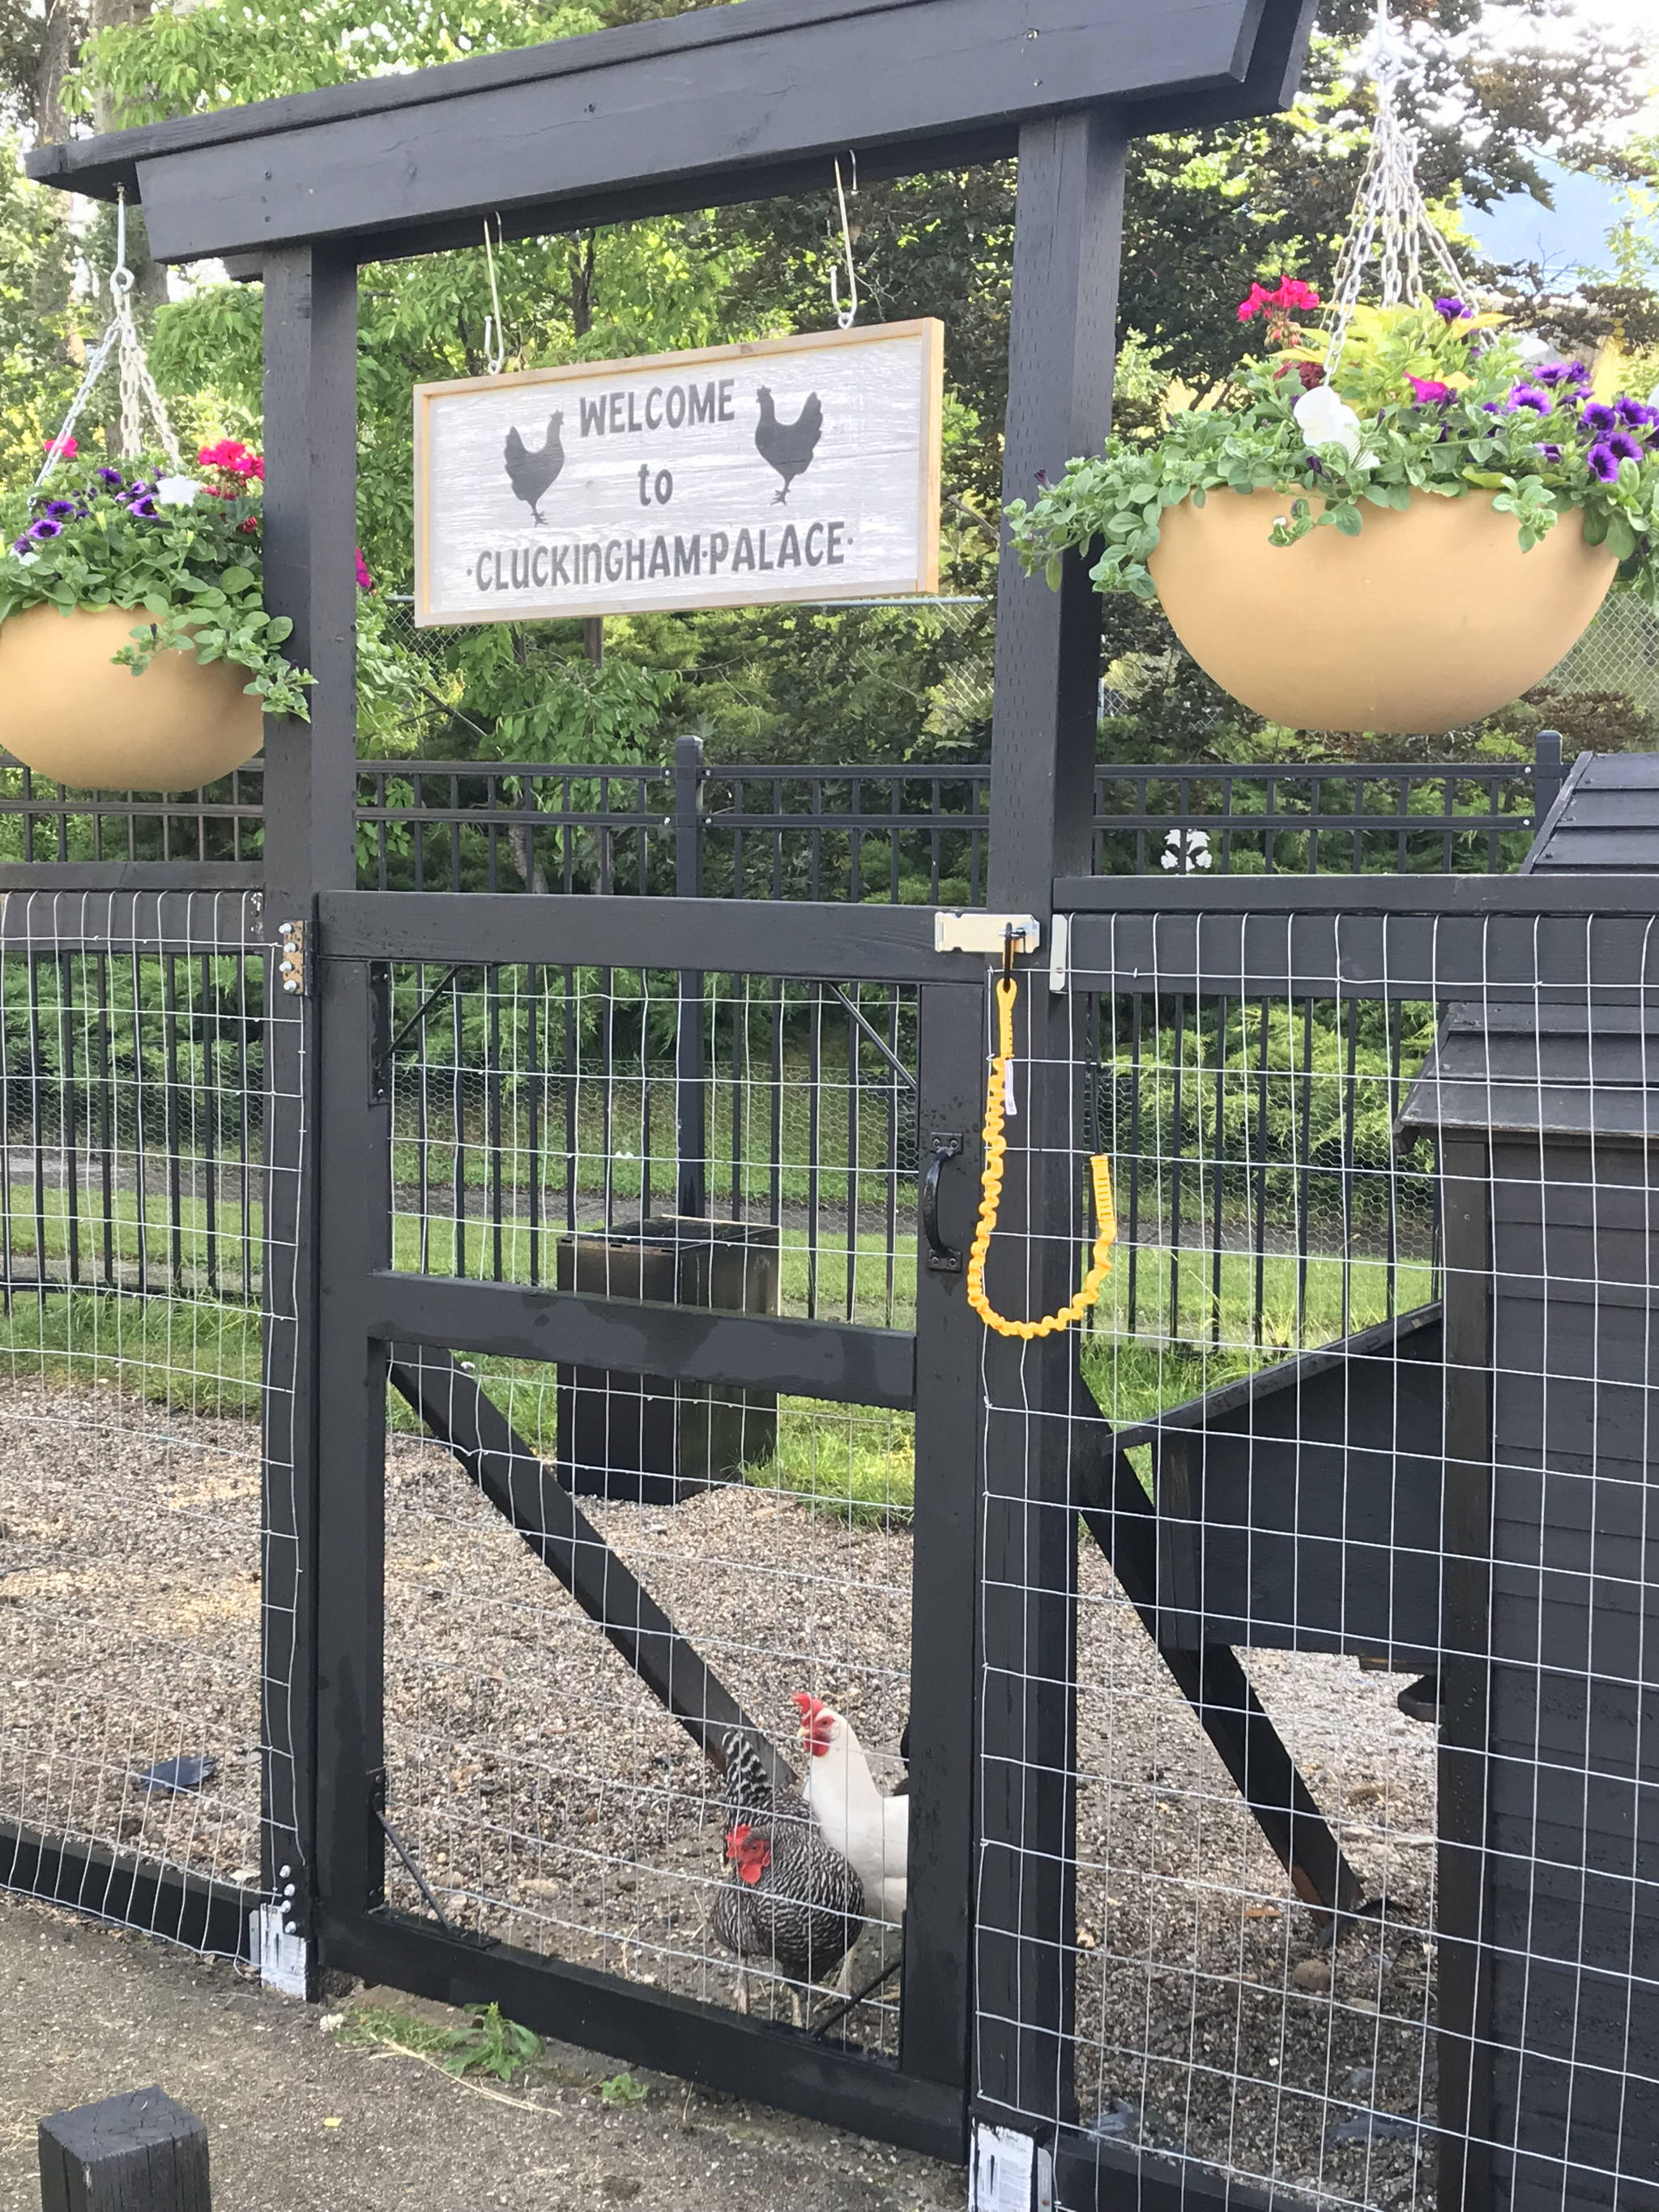 'Cluckingham Palace' was built this year with the aid of some local businesses. Submitted photo